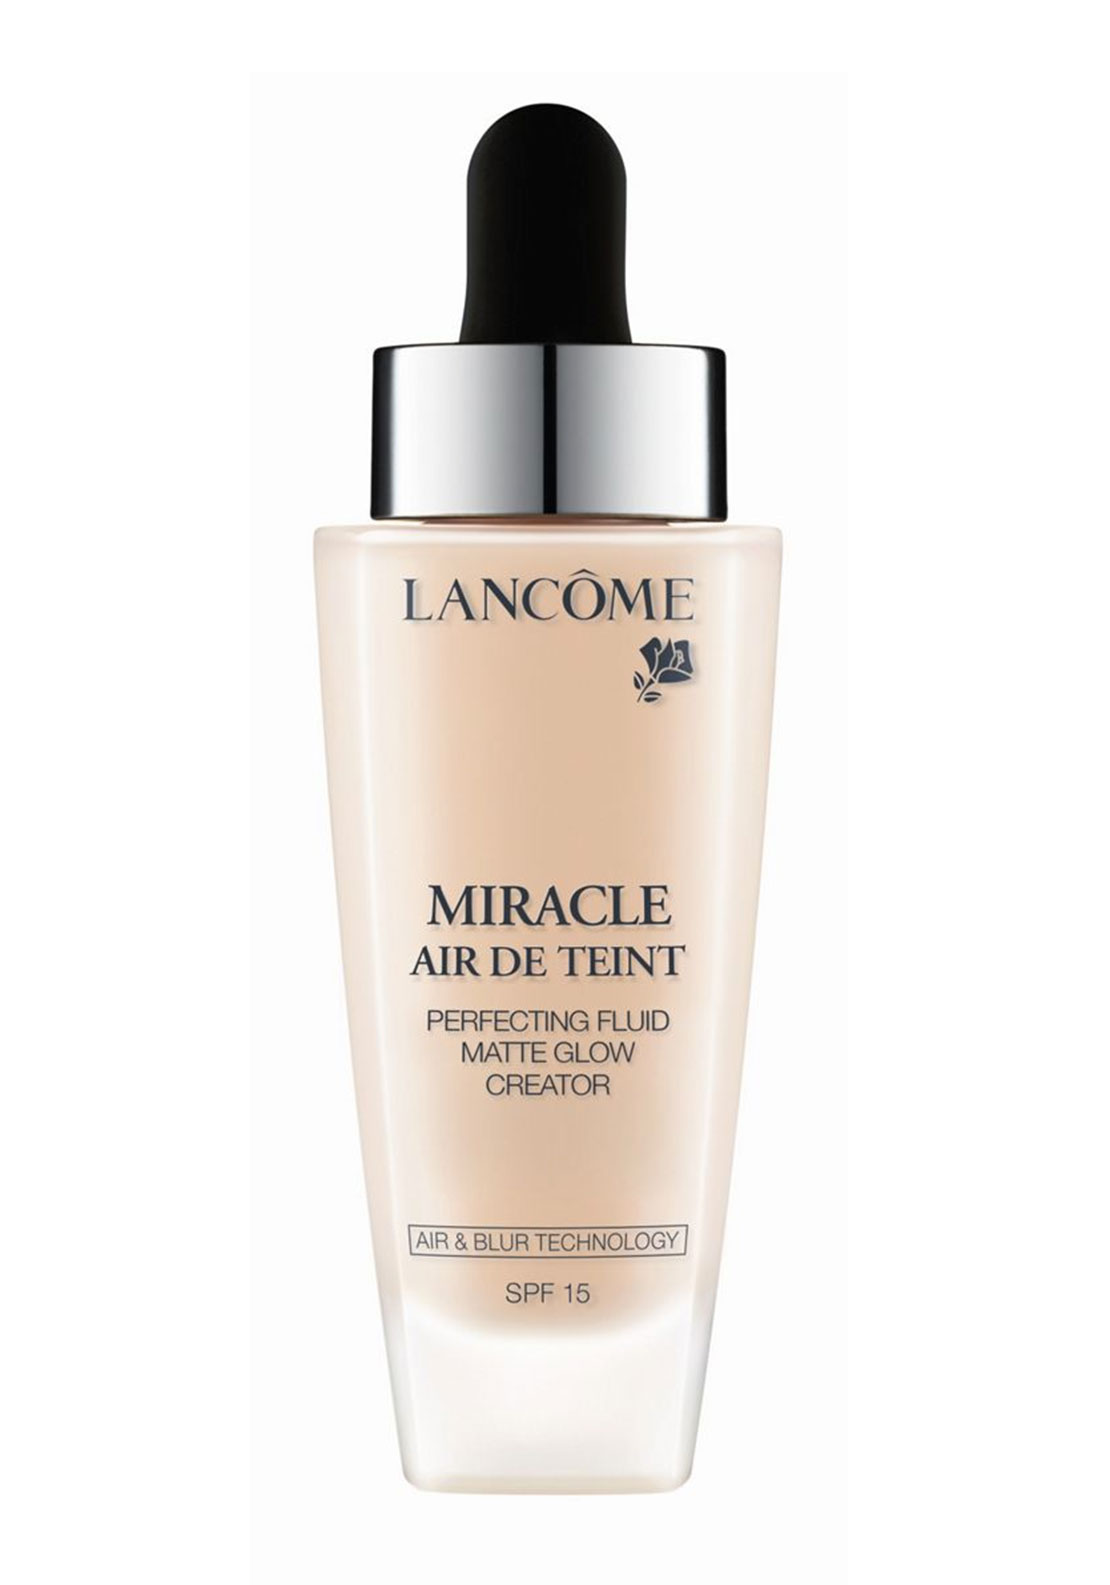 Lancome Miracle Air de Teint Foundation, Lancome 010 Beige Porcelaine